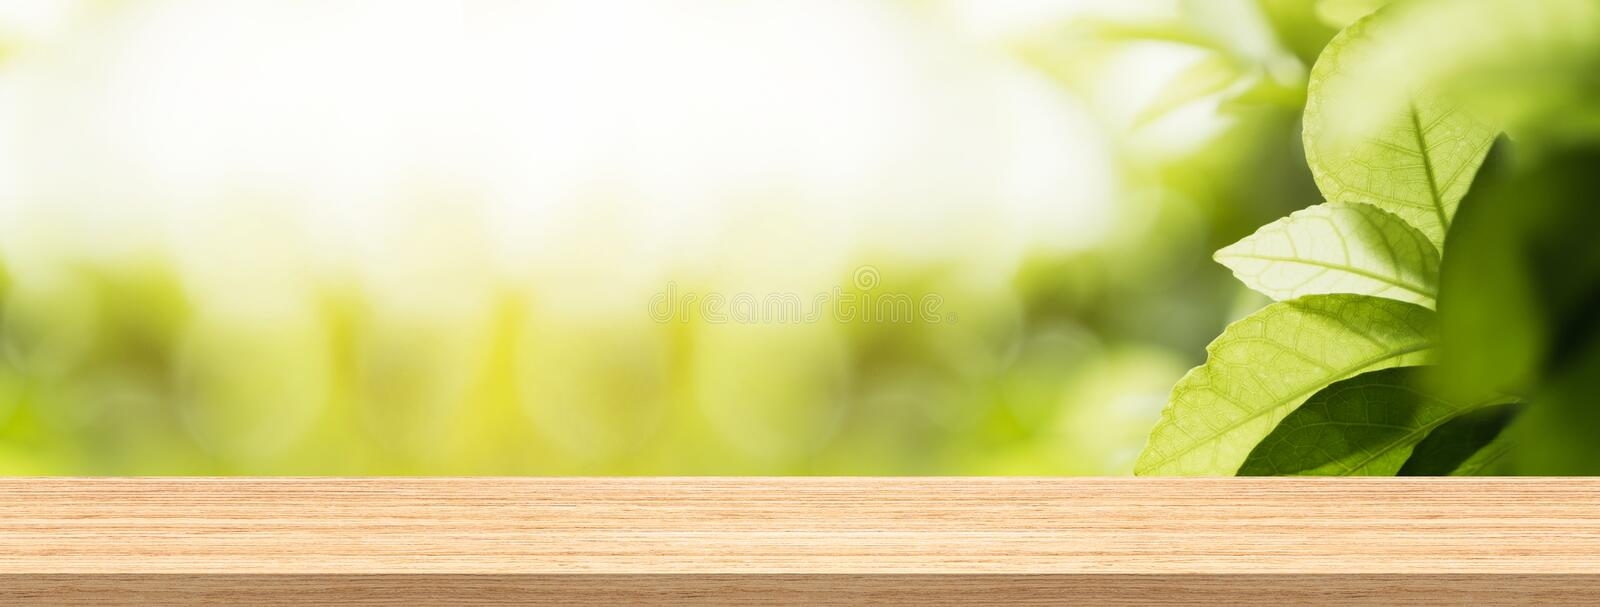 Wood table top and blur natural background in garden for product and display montage banner size. stock image